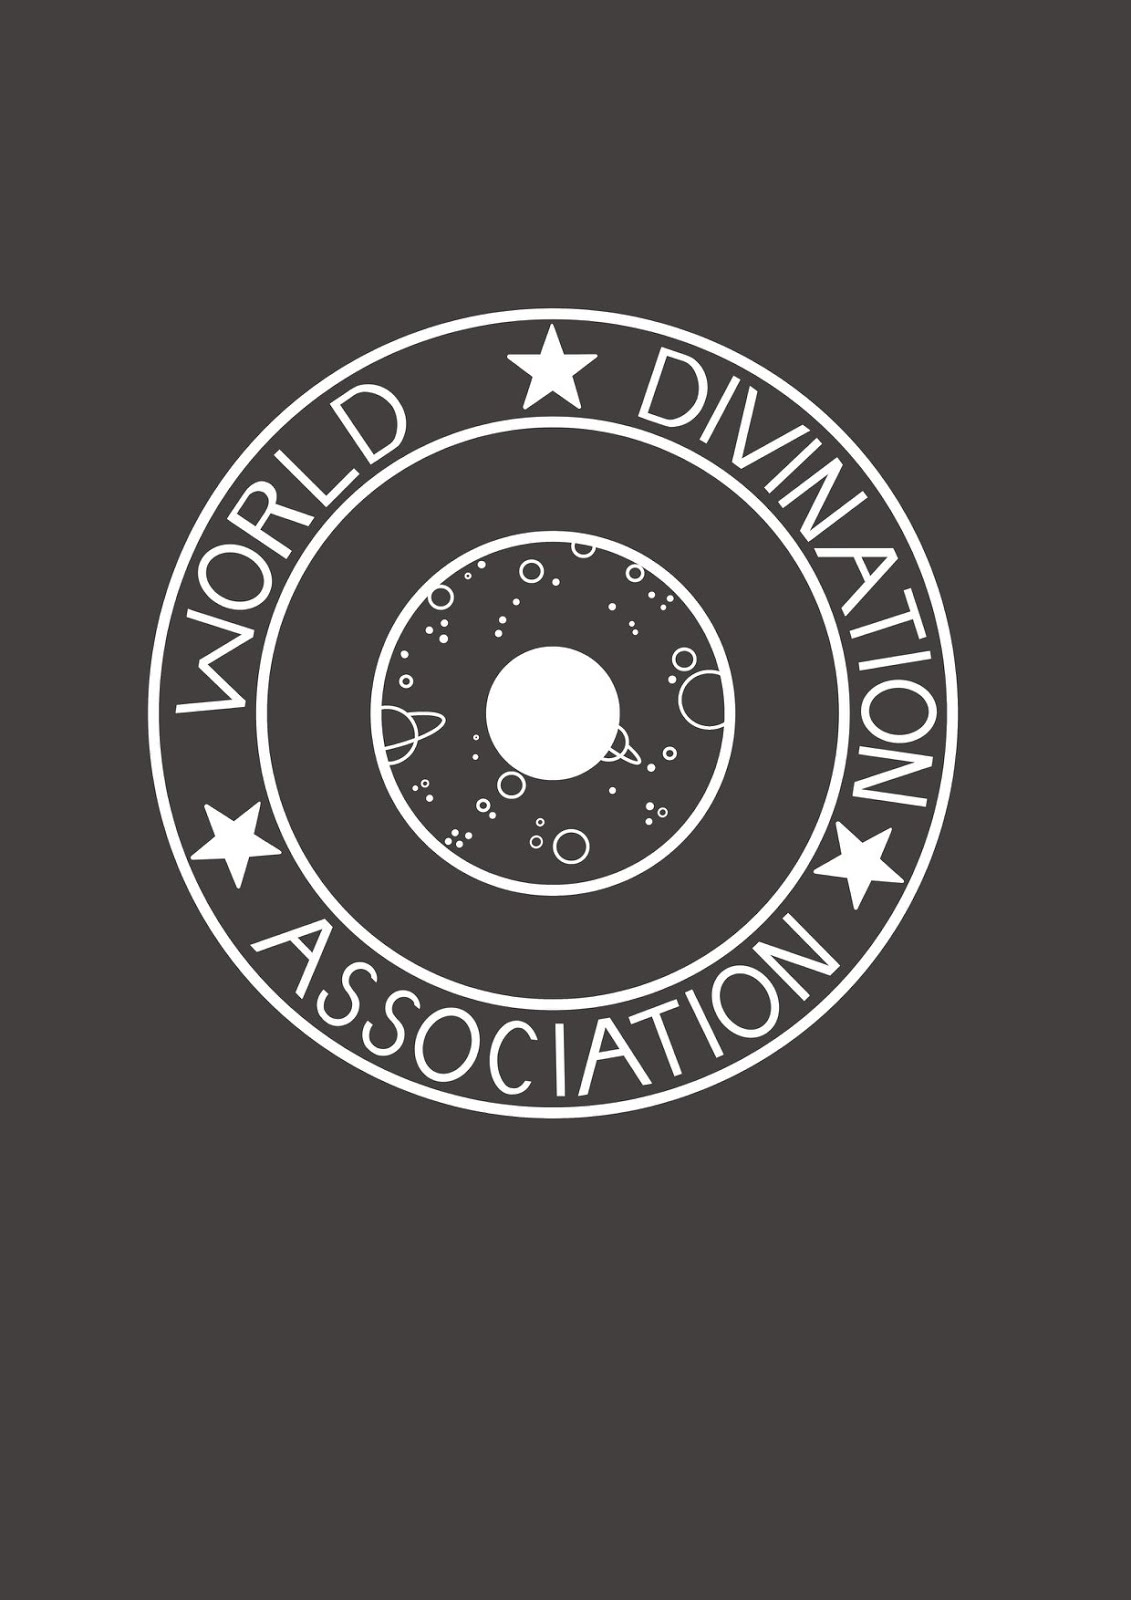 Miembro de la WDA (World Divination Association)